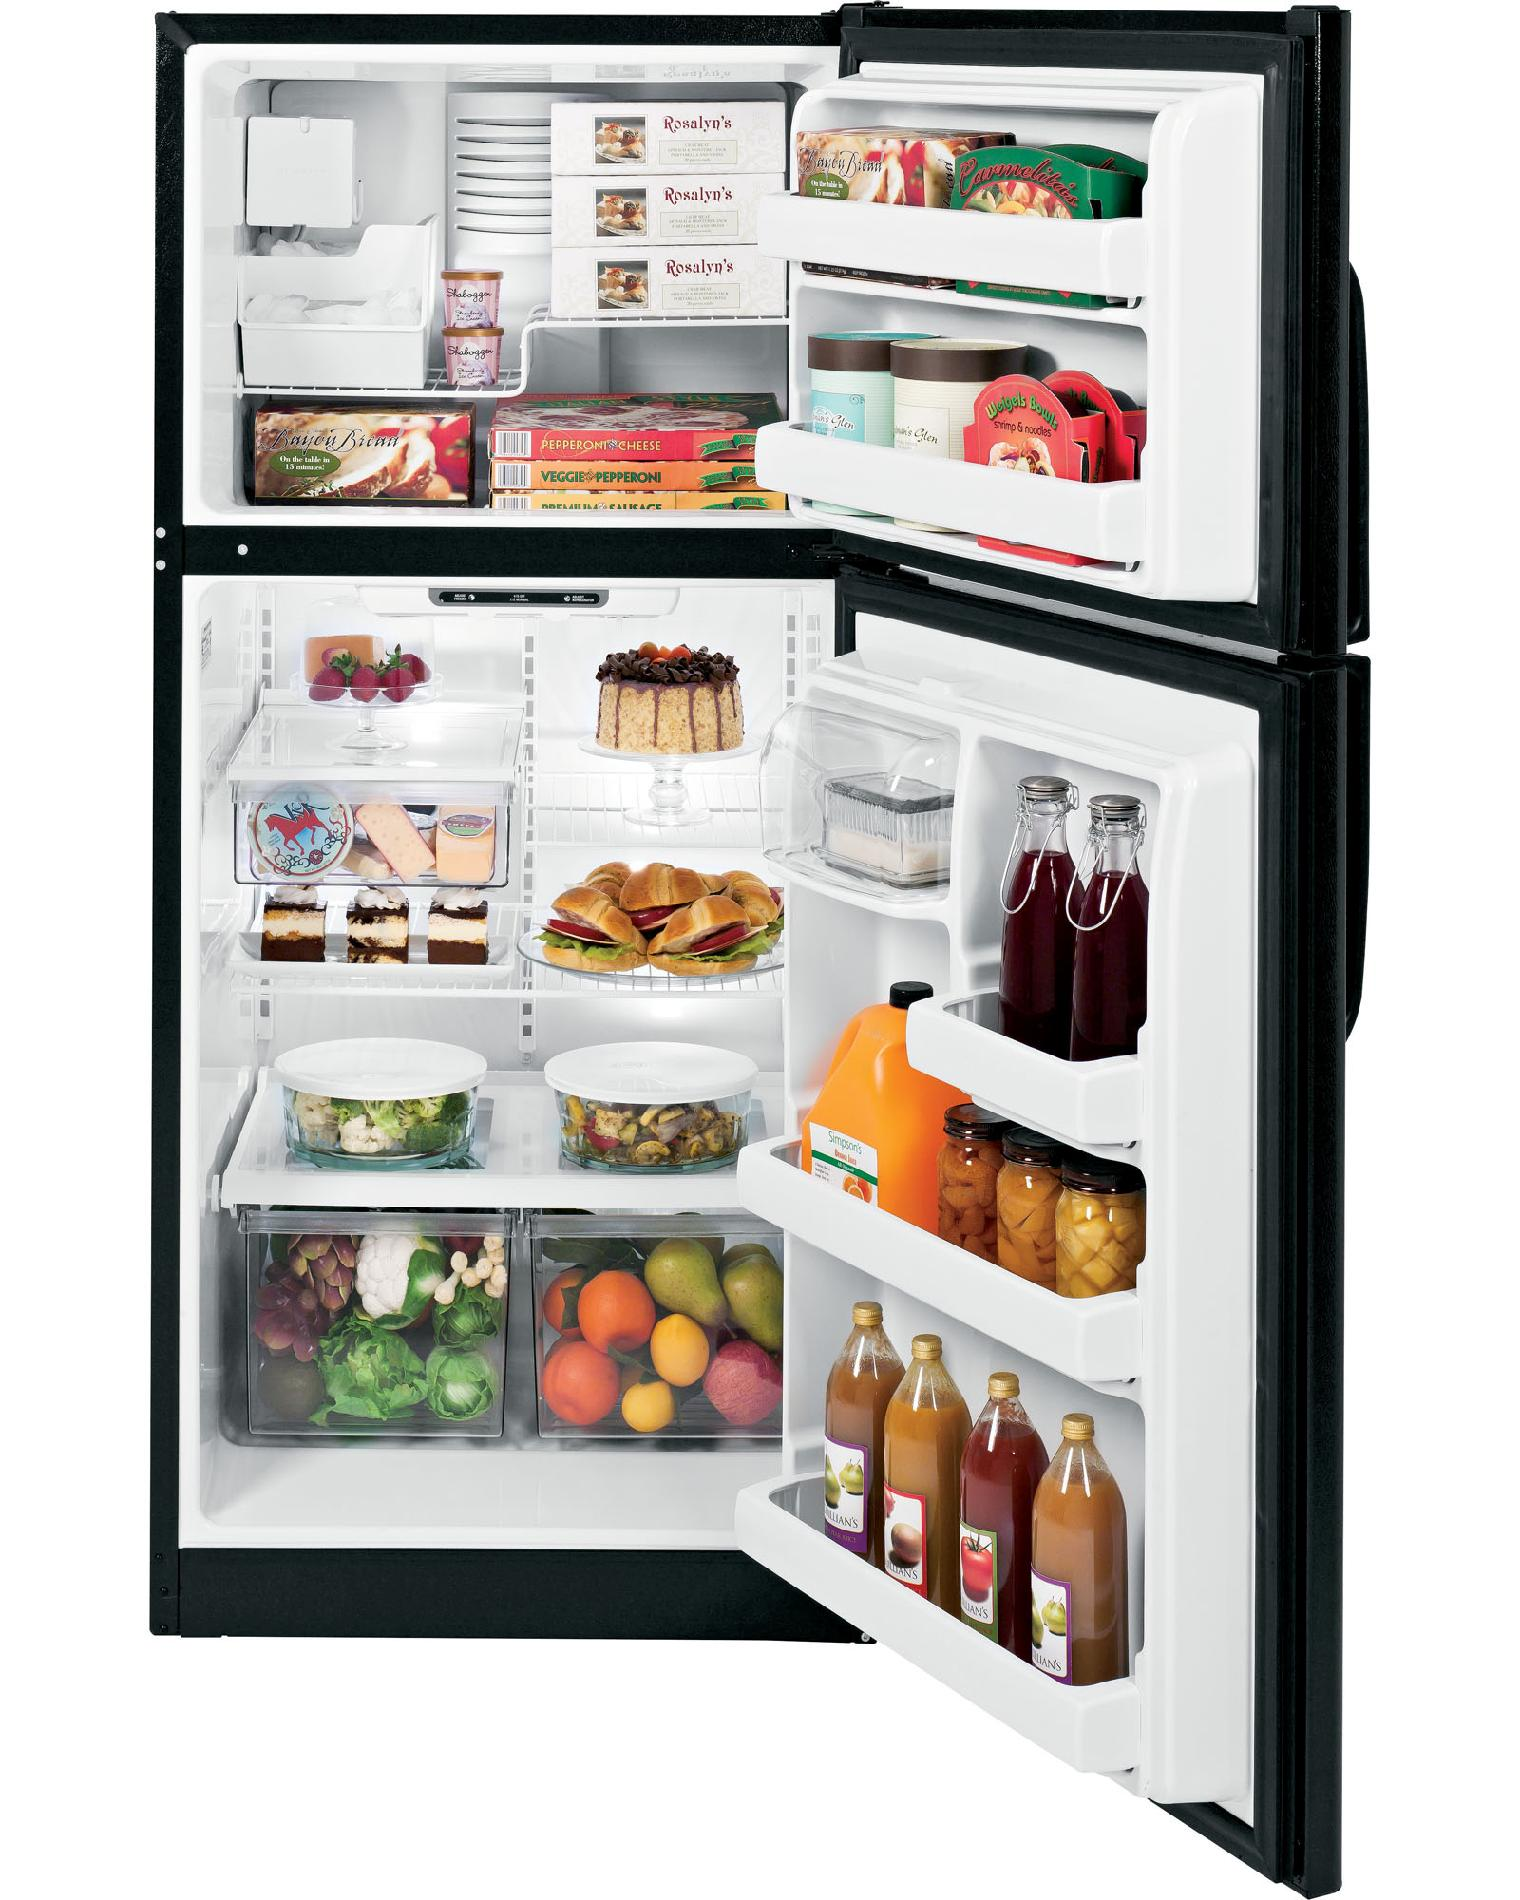 GE 18 cu. ft. Top-Freezer Refrigerator w/ Ice Maker - Black